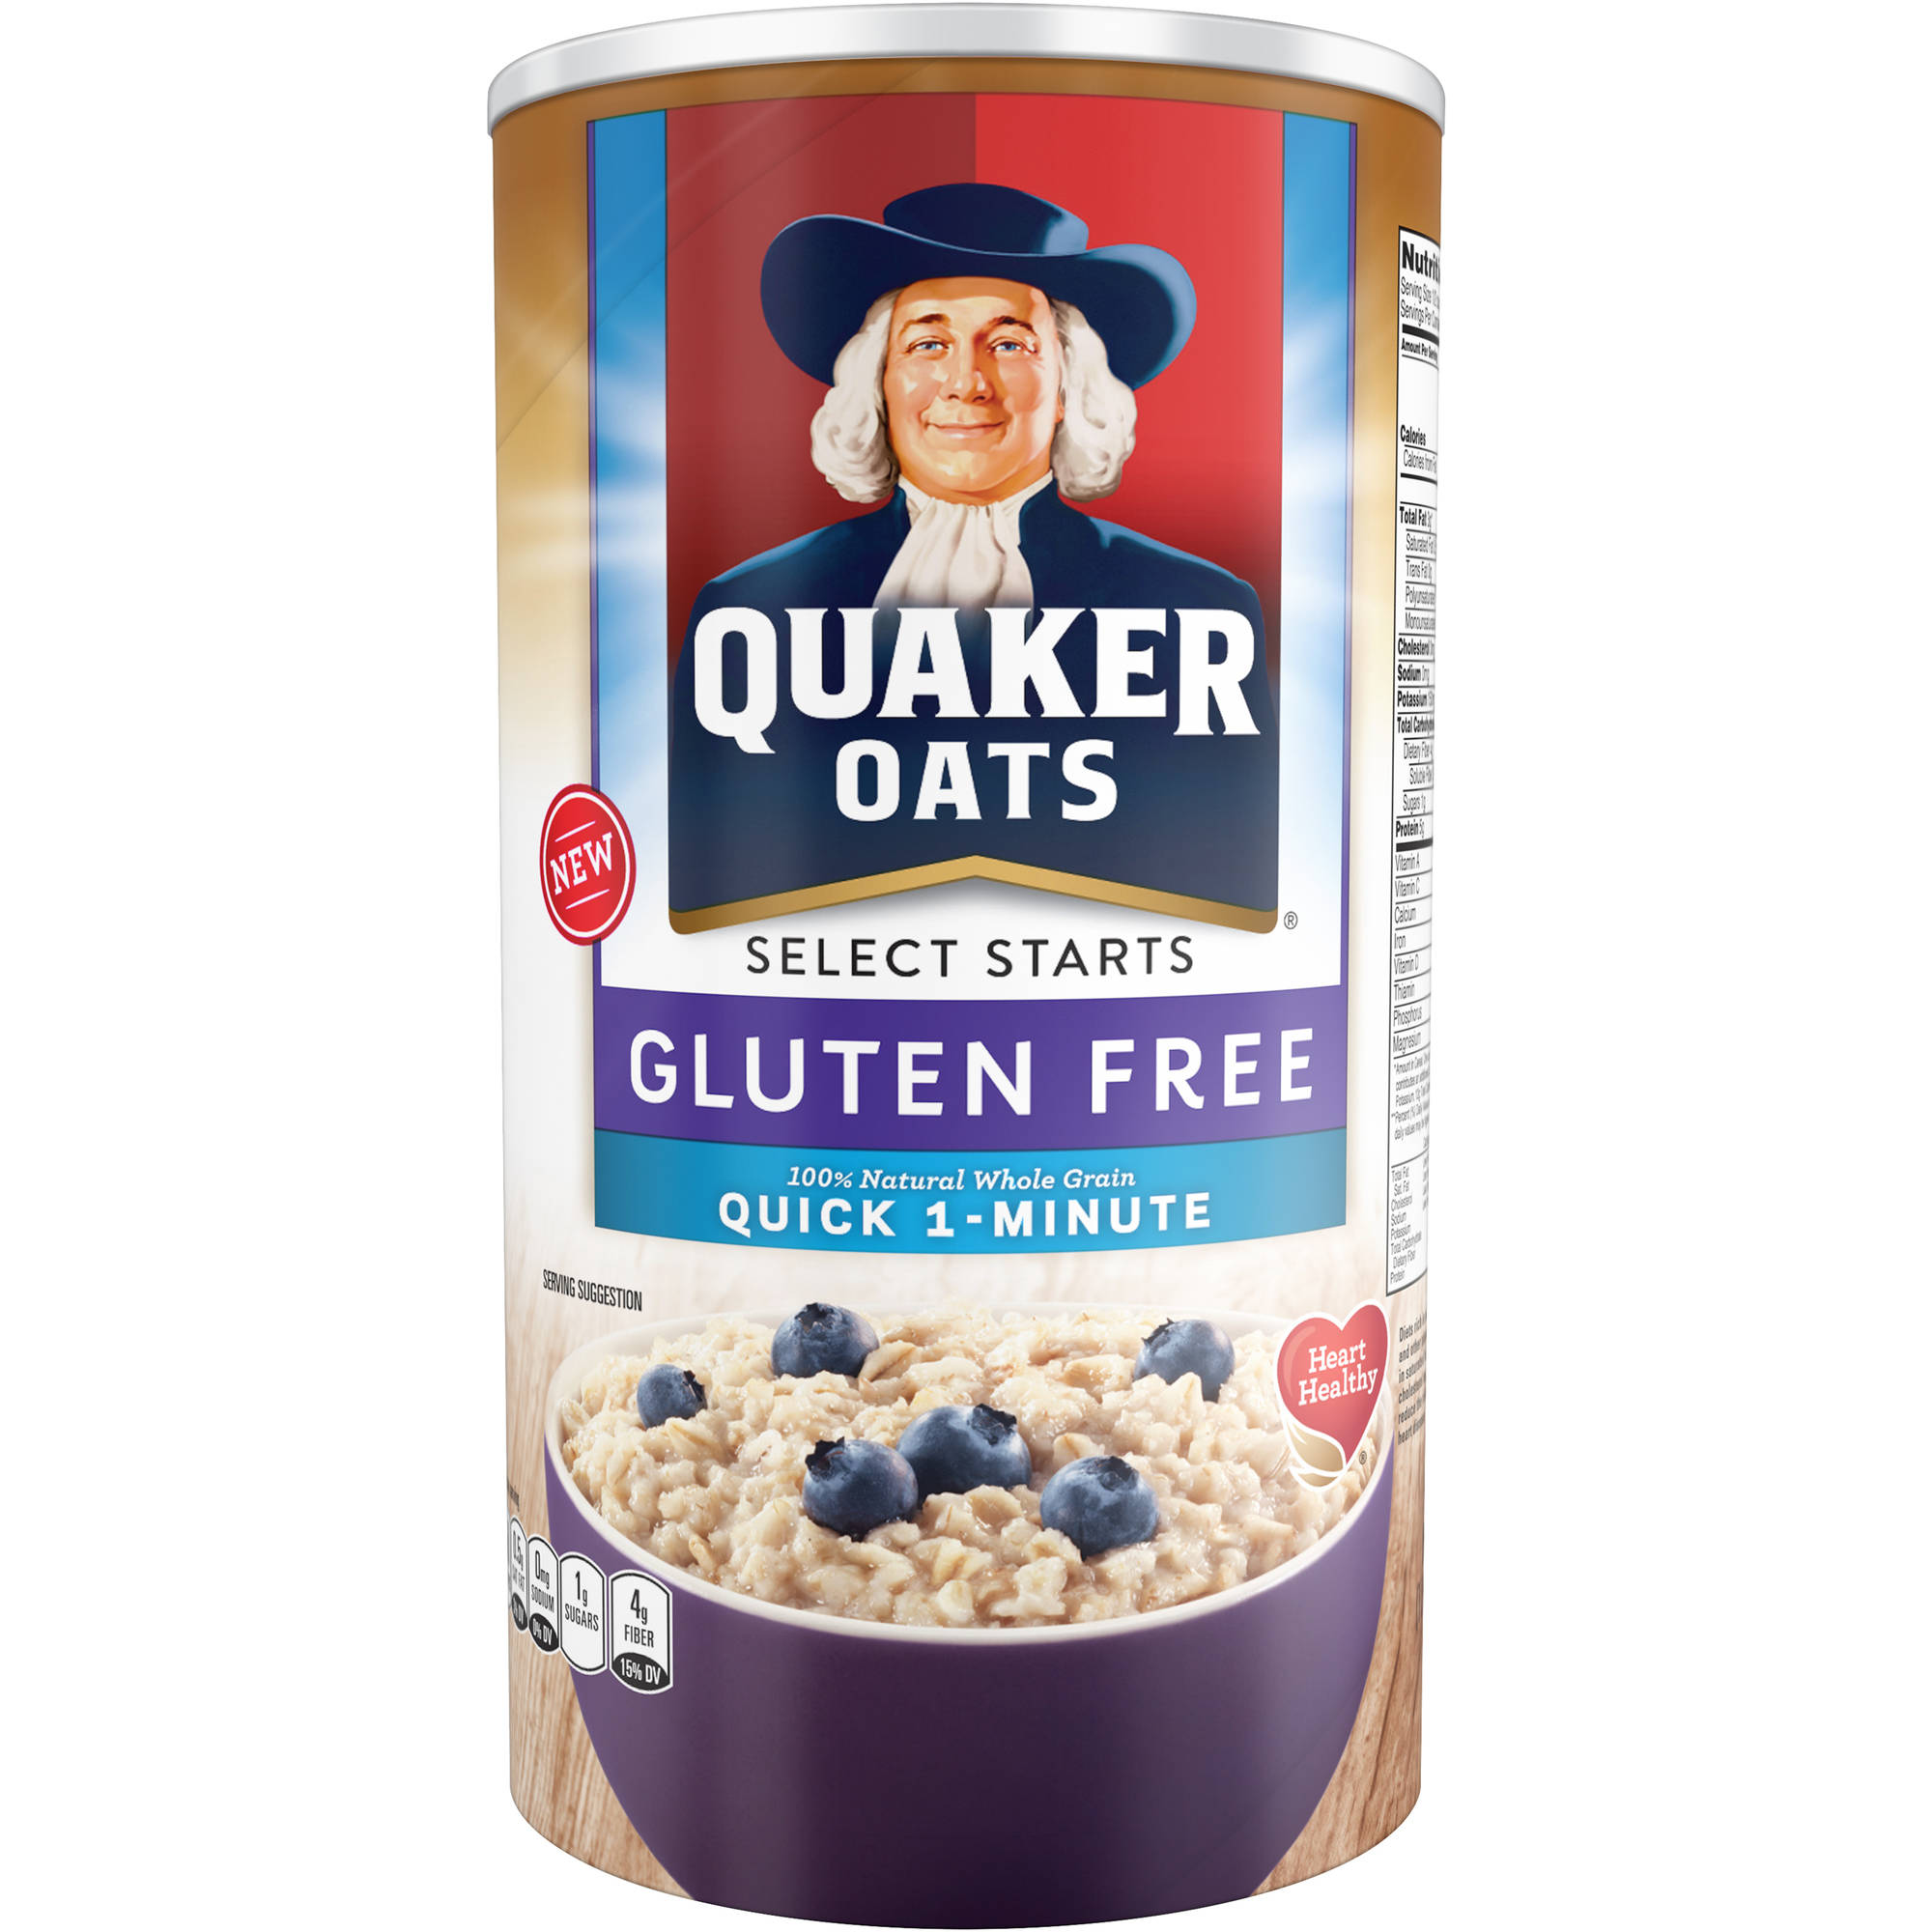 Quaker Oats Select Starts Quick 1-Minute Oats, 18 oz